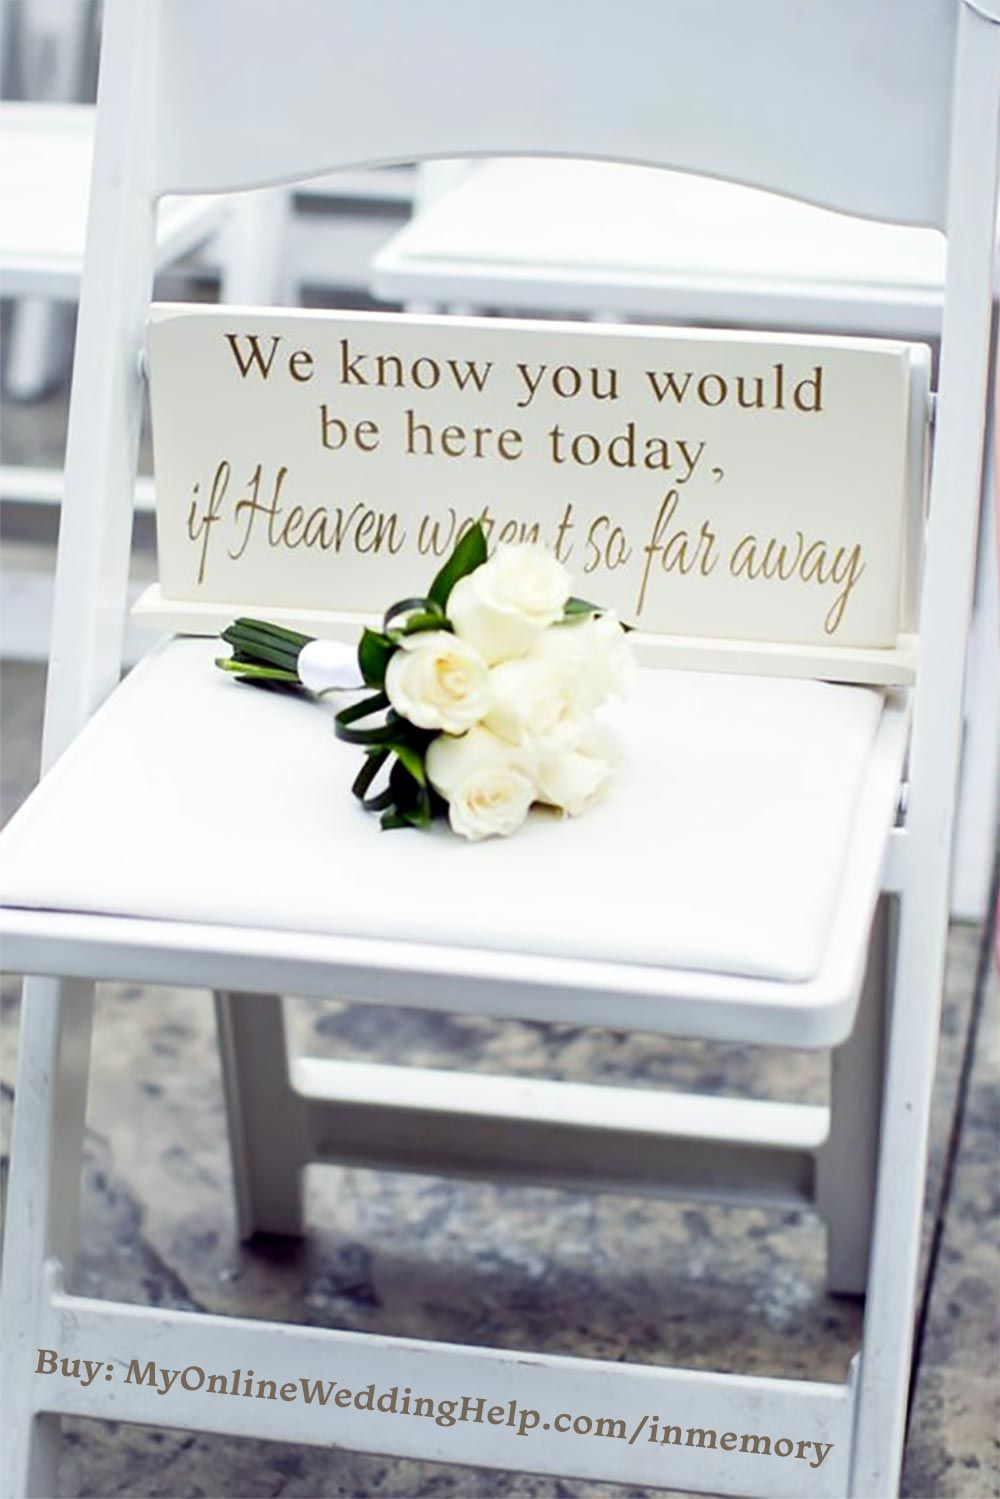 In Memorial Memory Decor (Page 1 of 1) | Wedding Products from MyOnlineWeddingHelp.com on MyOnlineWeddingHelp.com